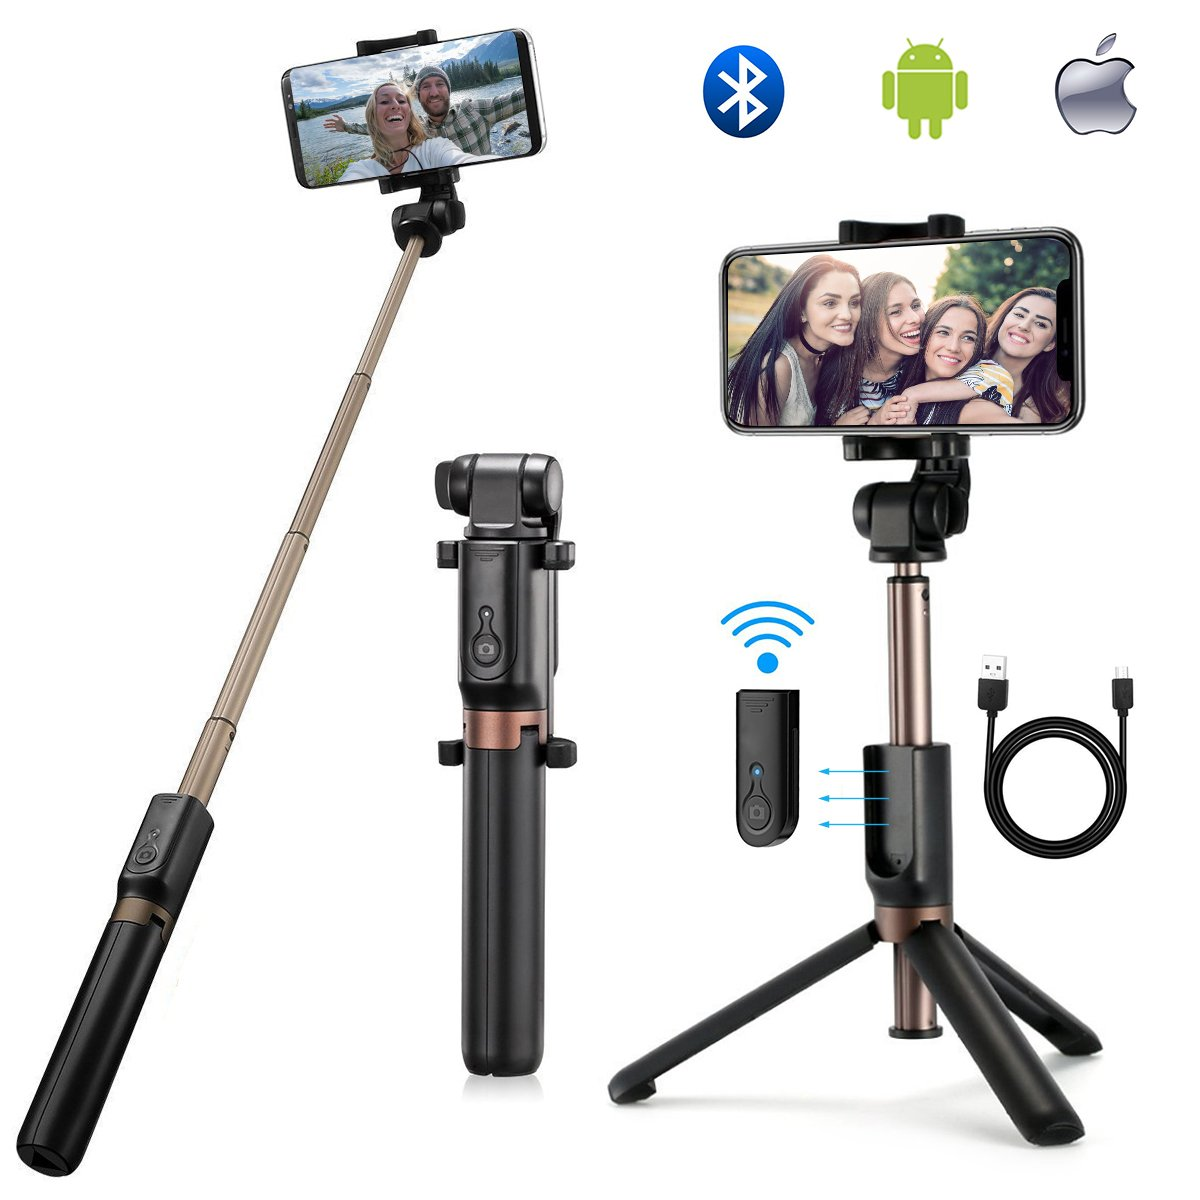 Bluetooth Selfie Stick Extendable Selfie Stick with Wireless Remote and Tripod Stand 360 Degree Rotation Mini Selfie Stick for iPhone x 8 6 7 plus Android Samsung Galaxy and More